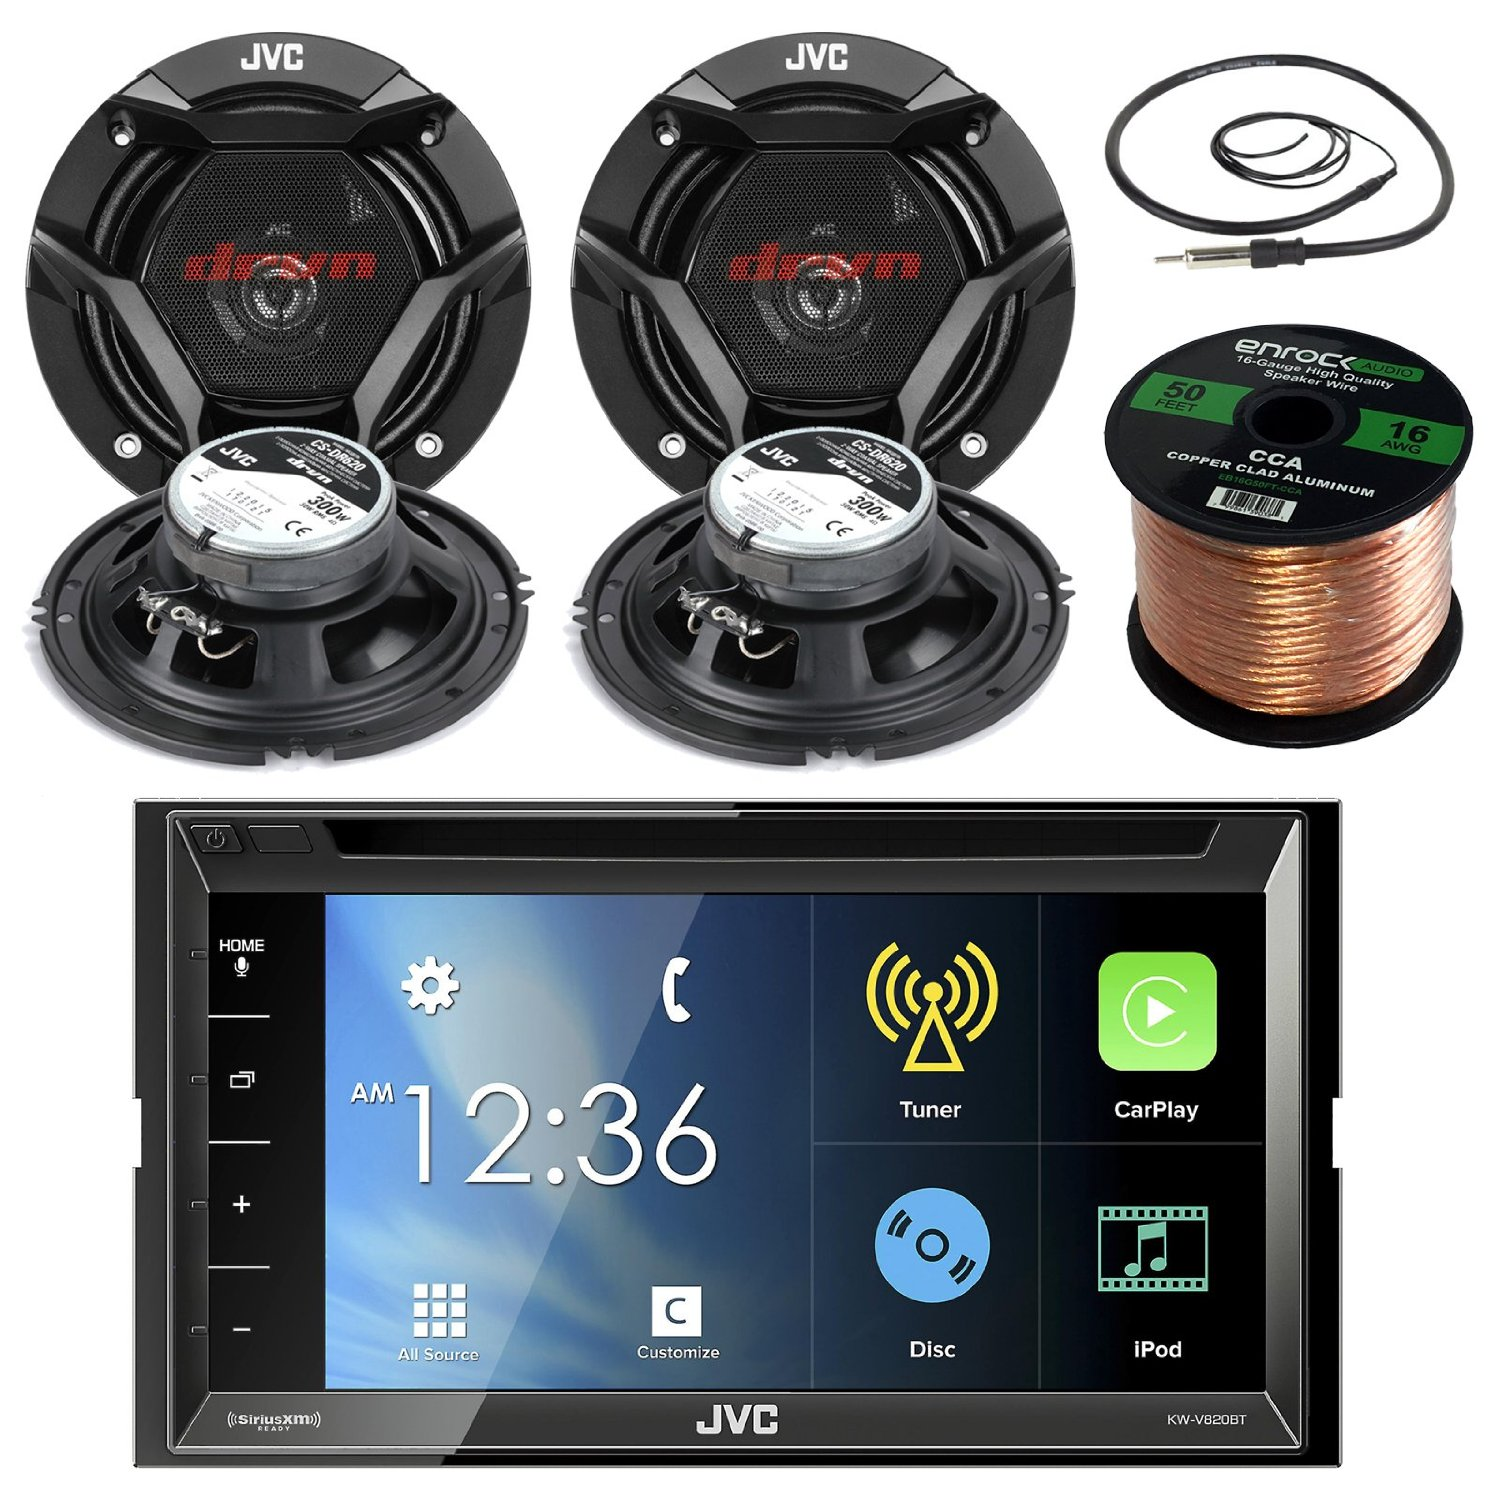 """JVC KWV820BT 6.8"""" Touch Screen Car CD/DVD Bluetooth Receiver Bundle Combo With 4x CS-DR620 6.5"""" Inch 300 Watt 2-Way Audio Coaxial Speakers + Enrock 22"""" AM/FM Antenna + 50 Foot 16 Guage Speaker Wire"""